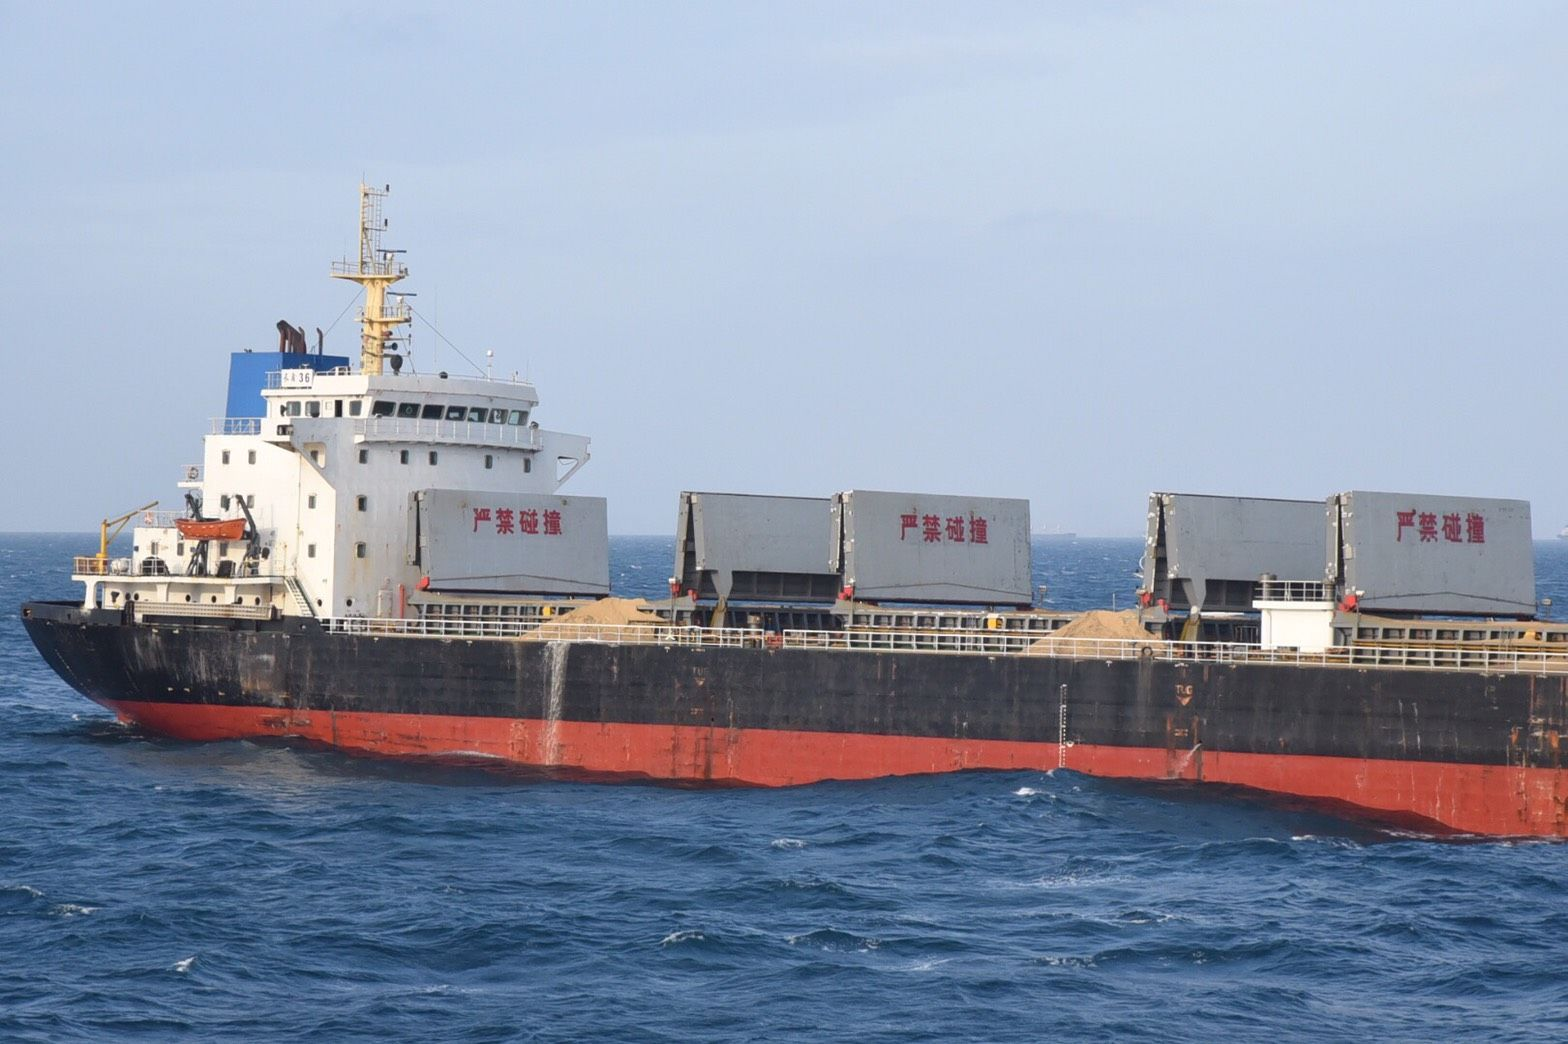 """Chang Xin 36"" sand transport vessel from Mainland China"